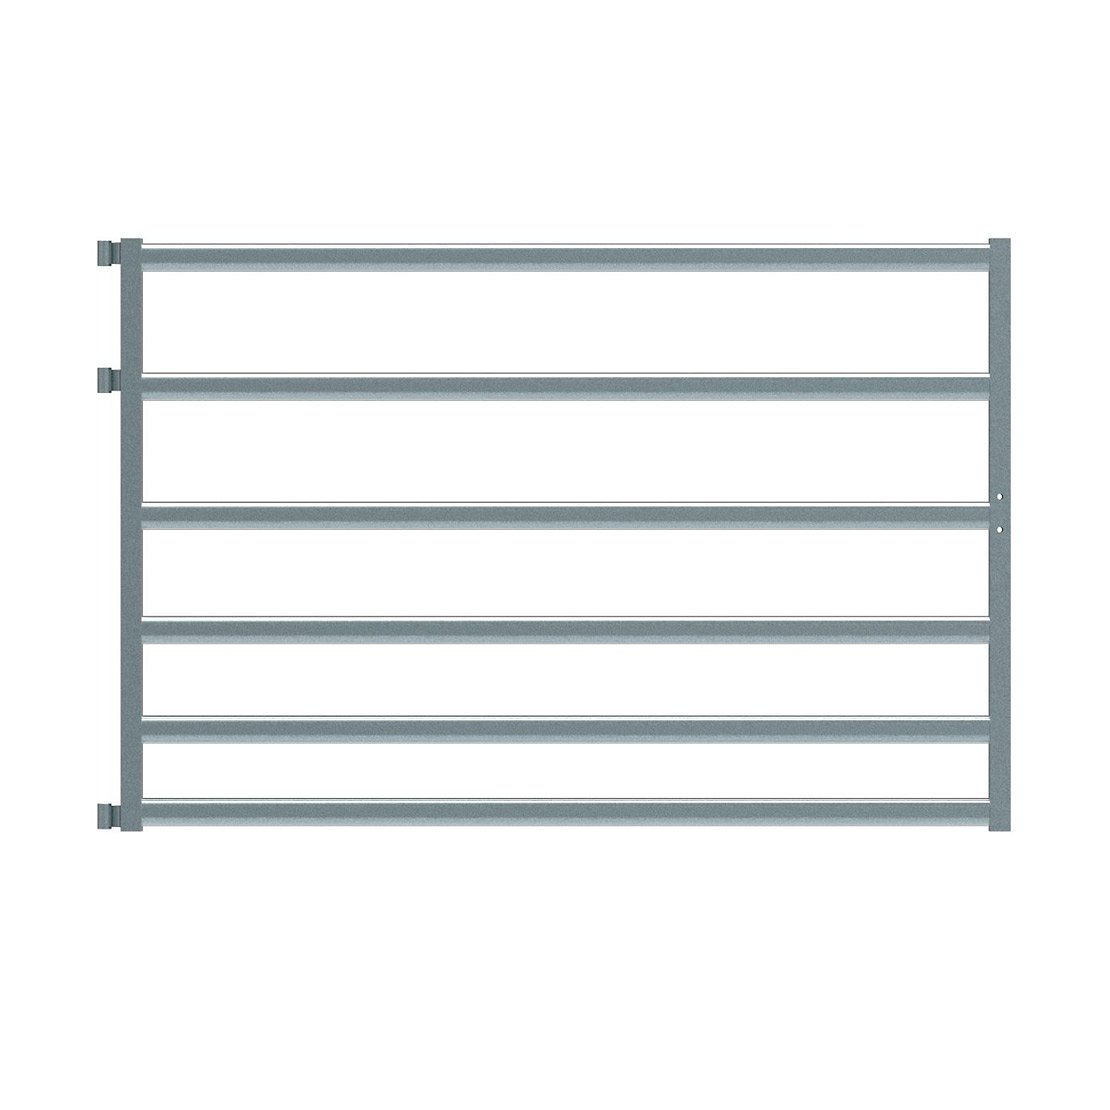 Cattle Yard Gate 6 Rail (2100mm x 1400mm High)